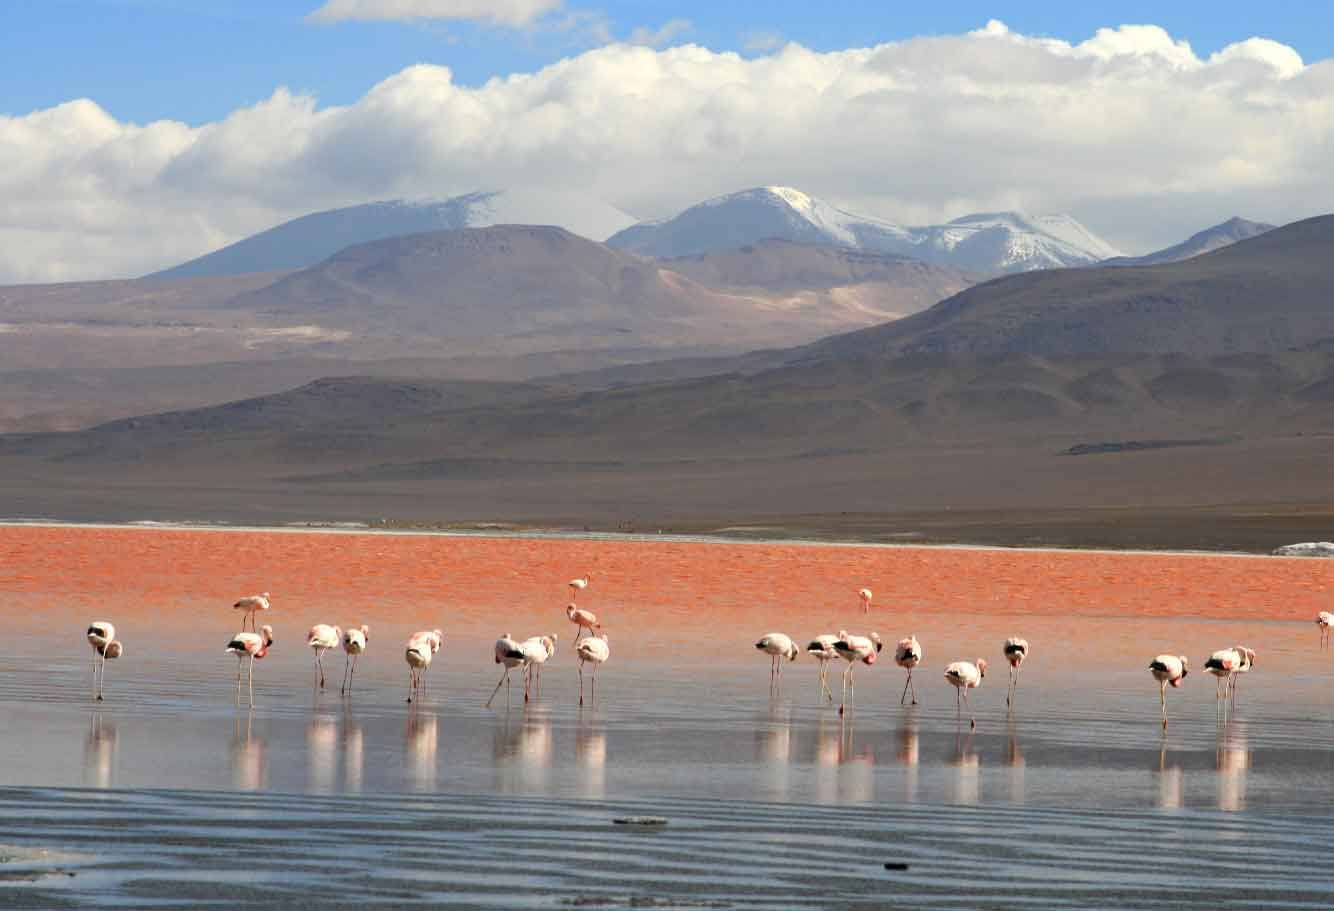 Tours South America, Peru, Bolivia and Chile Tours: Tour in Peru – Bolivia 25 days visit: Lima, Trujillo, Chiclayo, Chachapoyas, Kuelap, Paracas, Nazca, Arequipa, Puno, La Paz, Uyuni, Cusco, Sacred Valley and Machu Picchu.. The best tourist packages in Peru and South America.